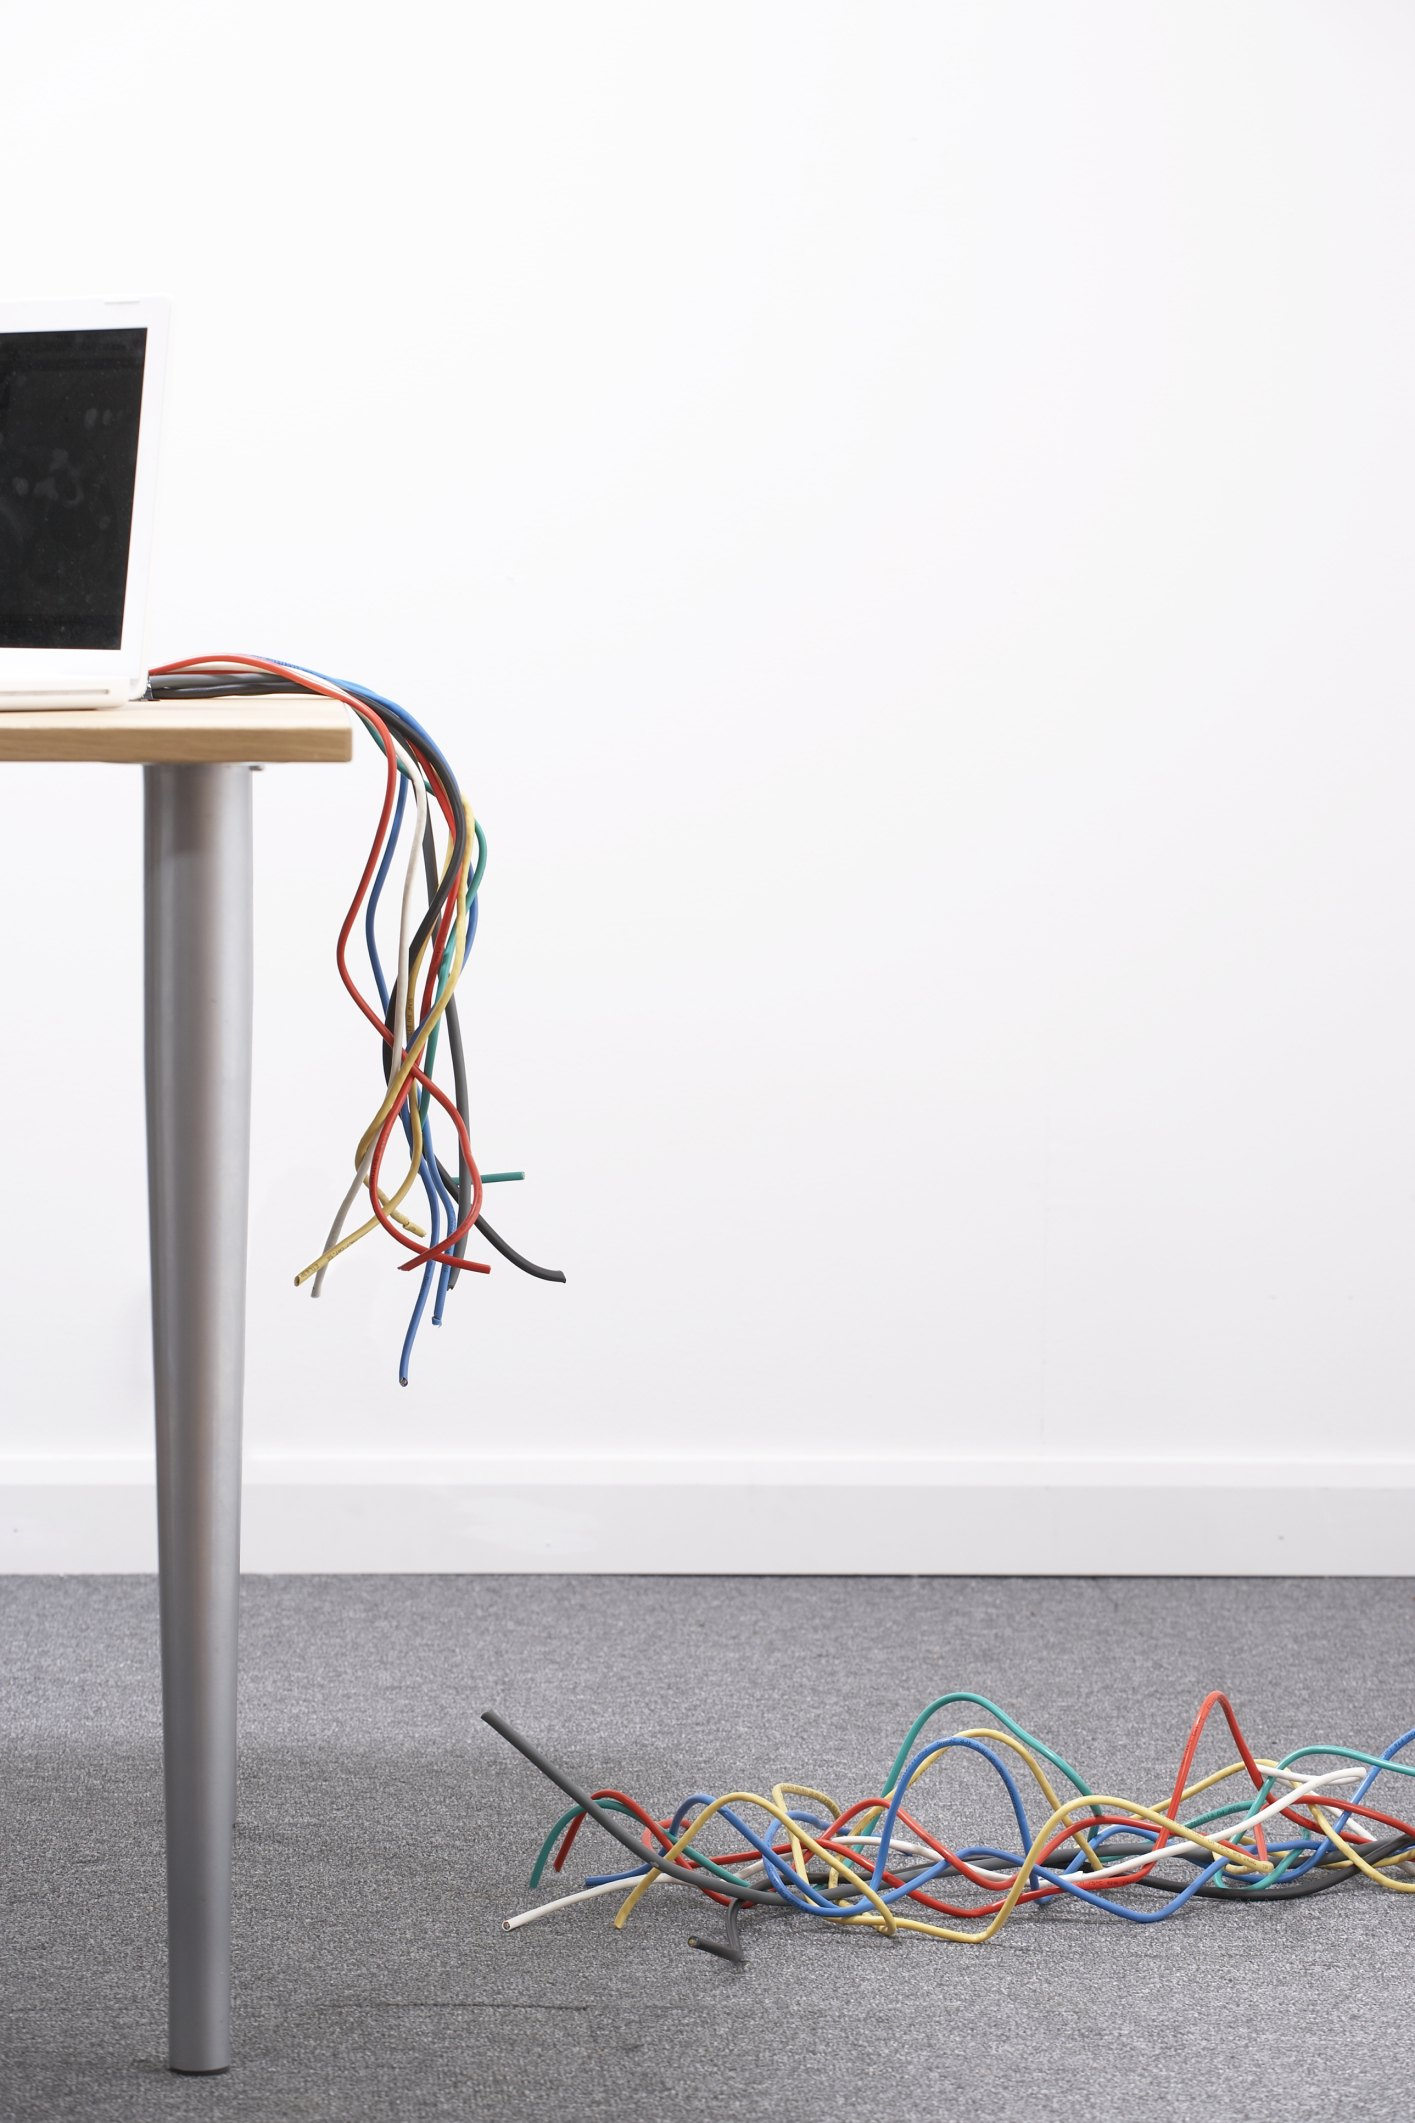 How to Handle Cords for a Desk in the Middle of a Room | eHow